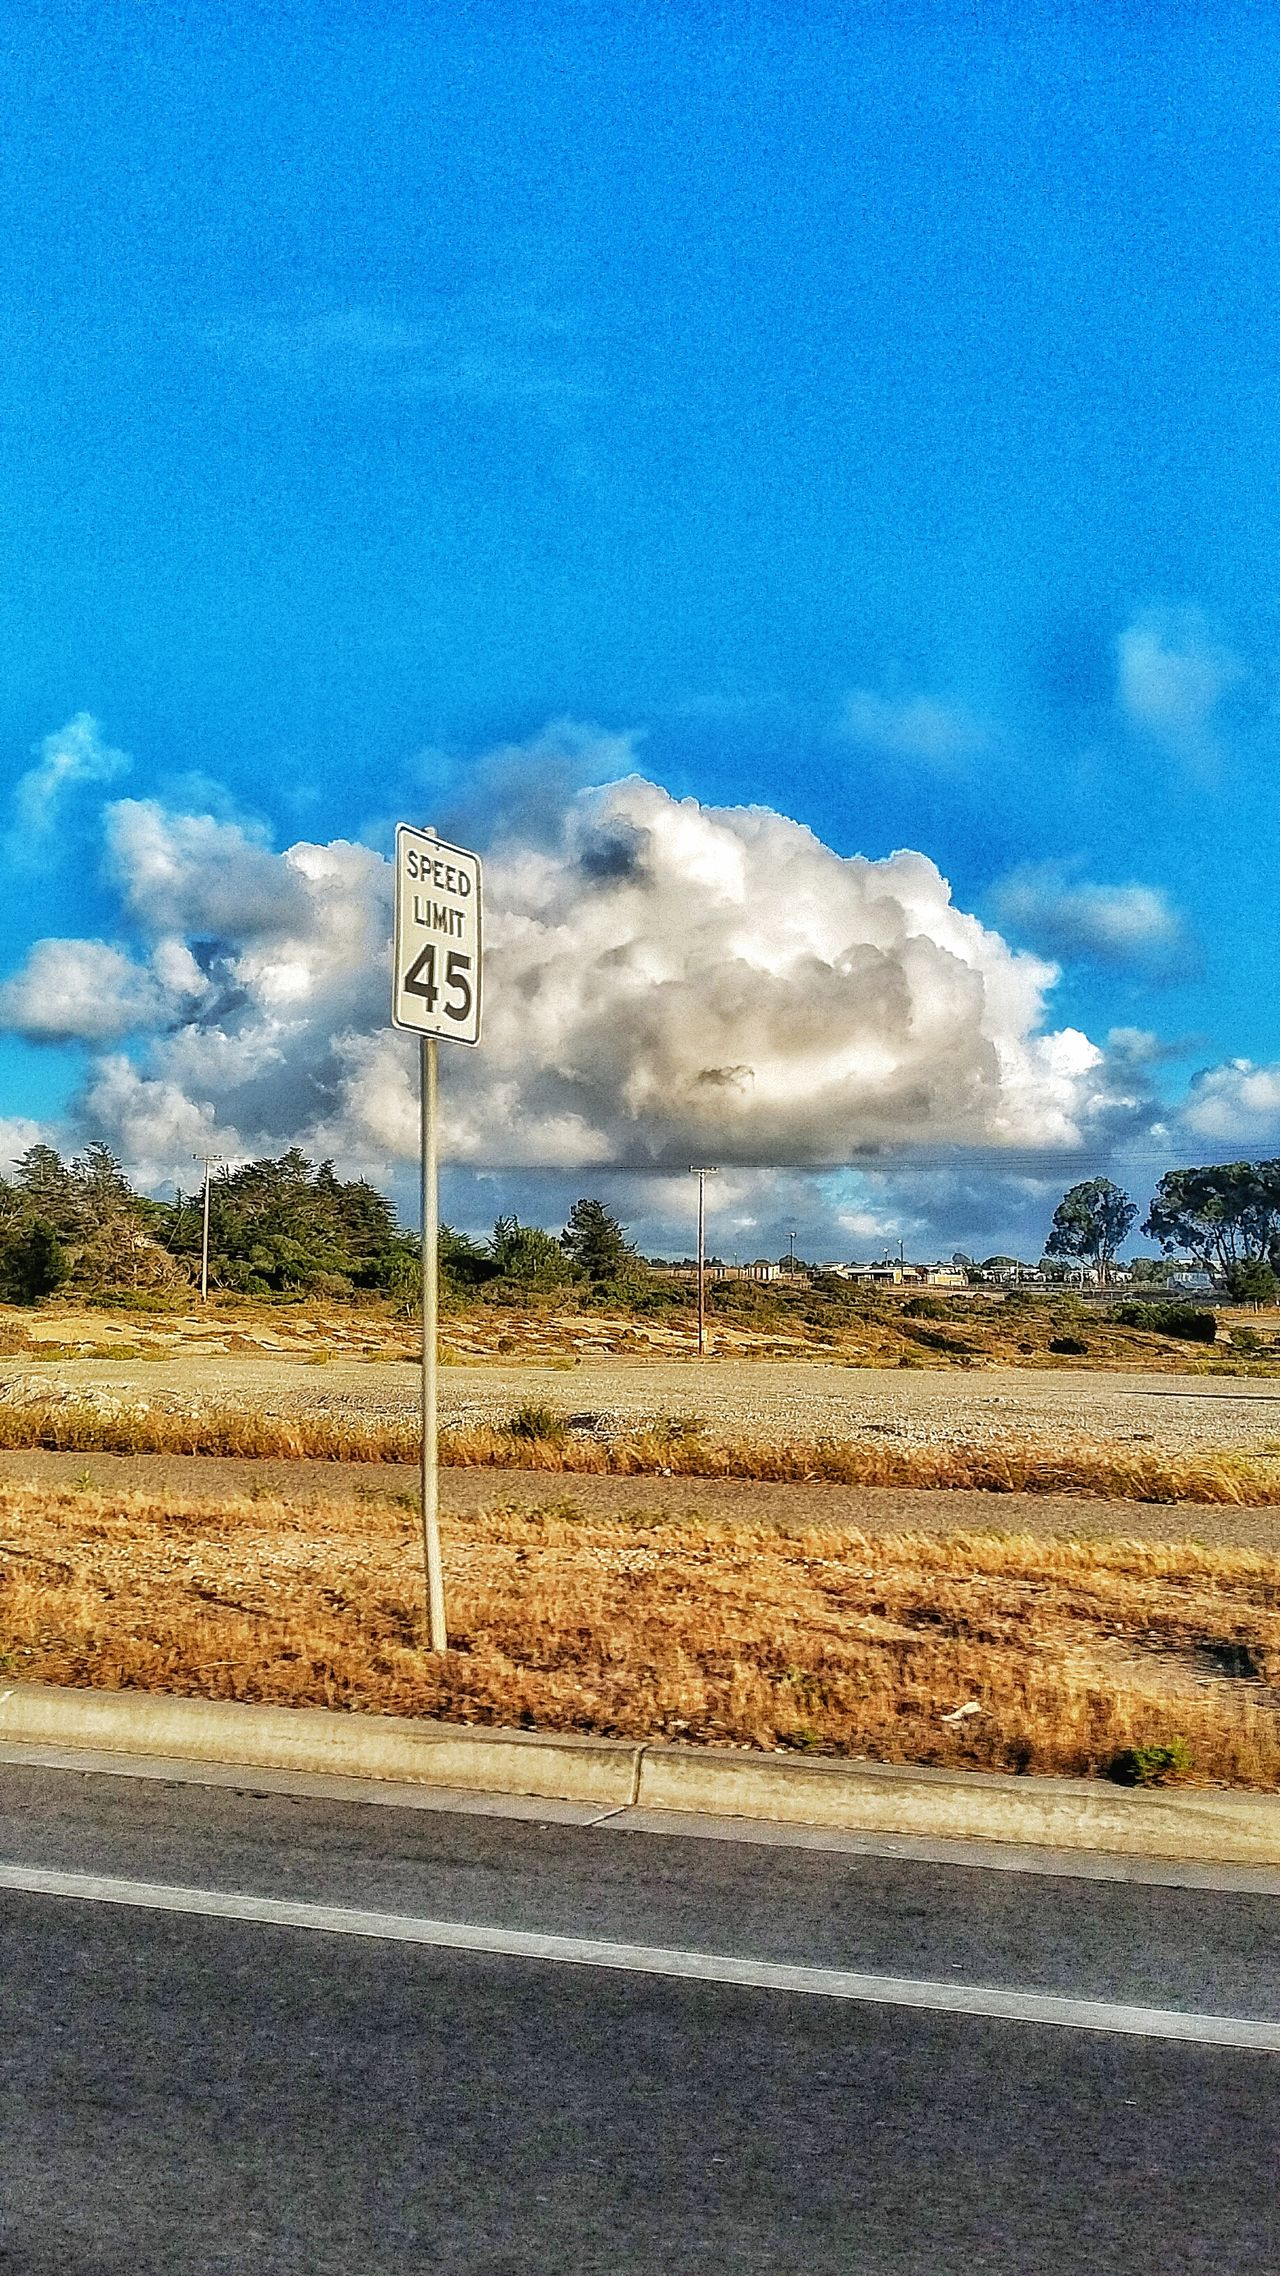 Slow down Cloud, speed limits 45! Lol Taking Photos Lonelycloud